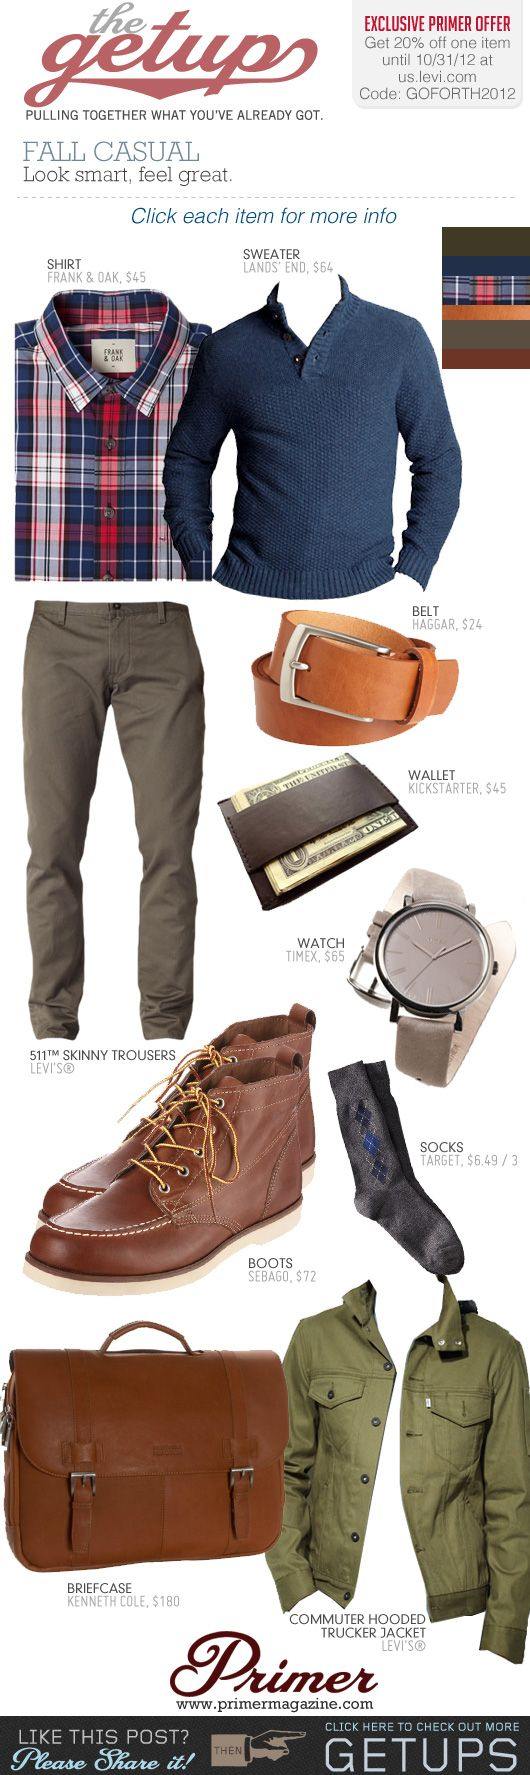 The Getup: Fall Casual | Primer